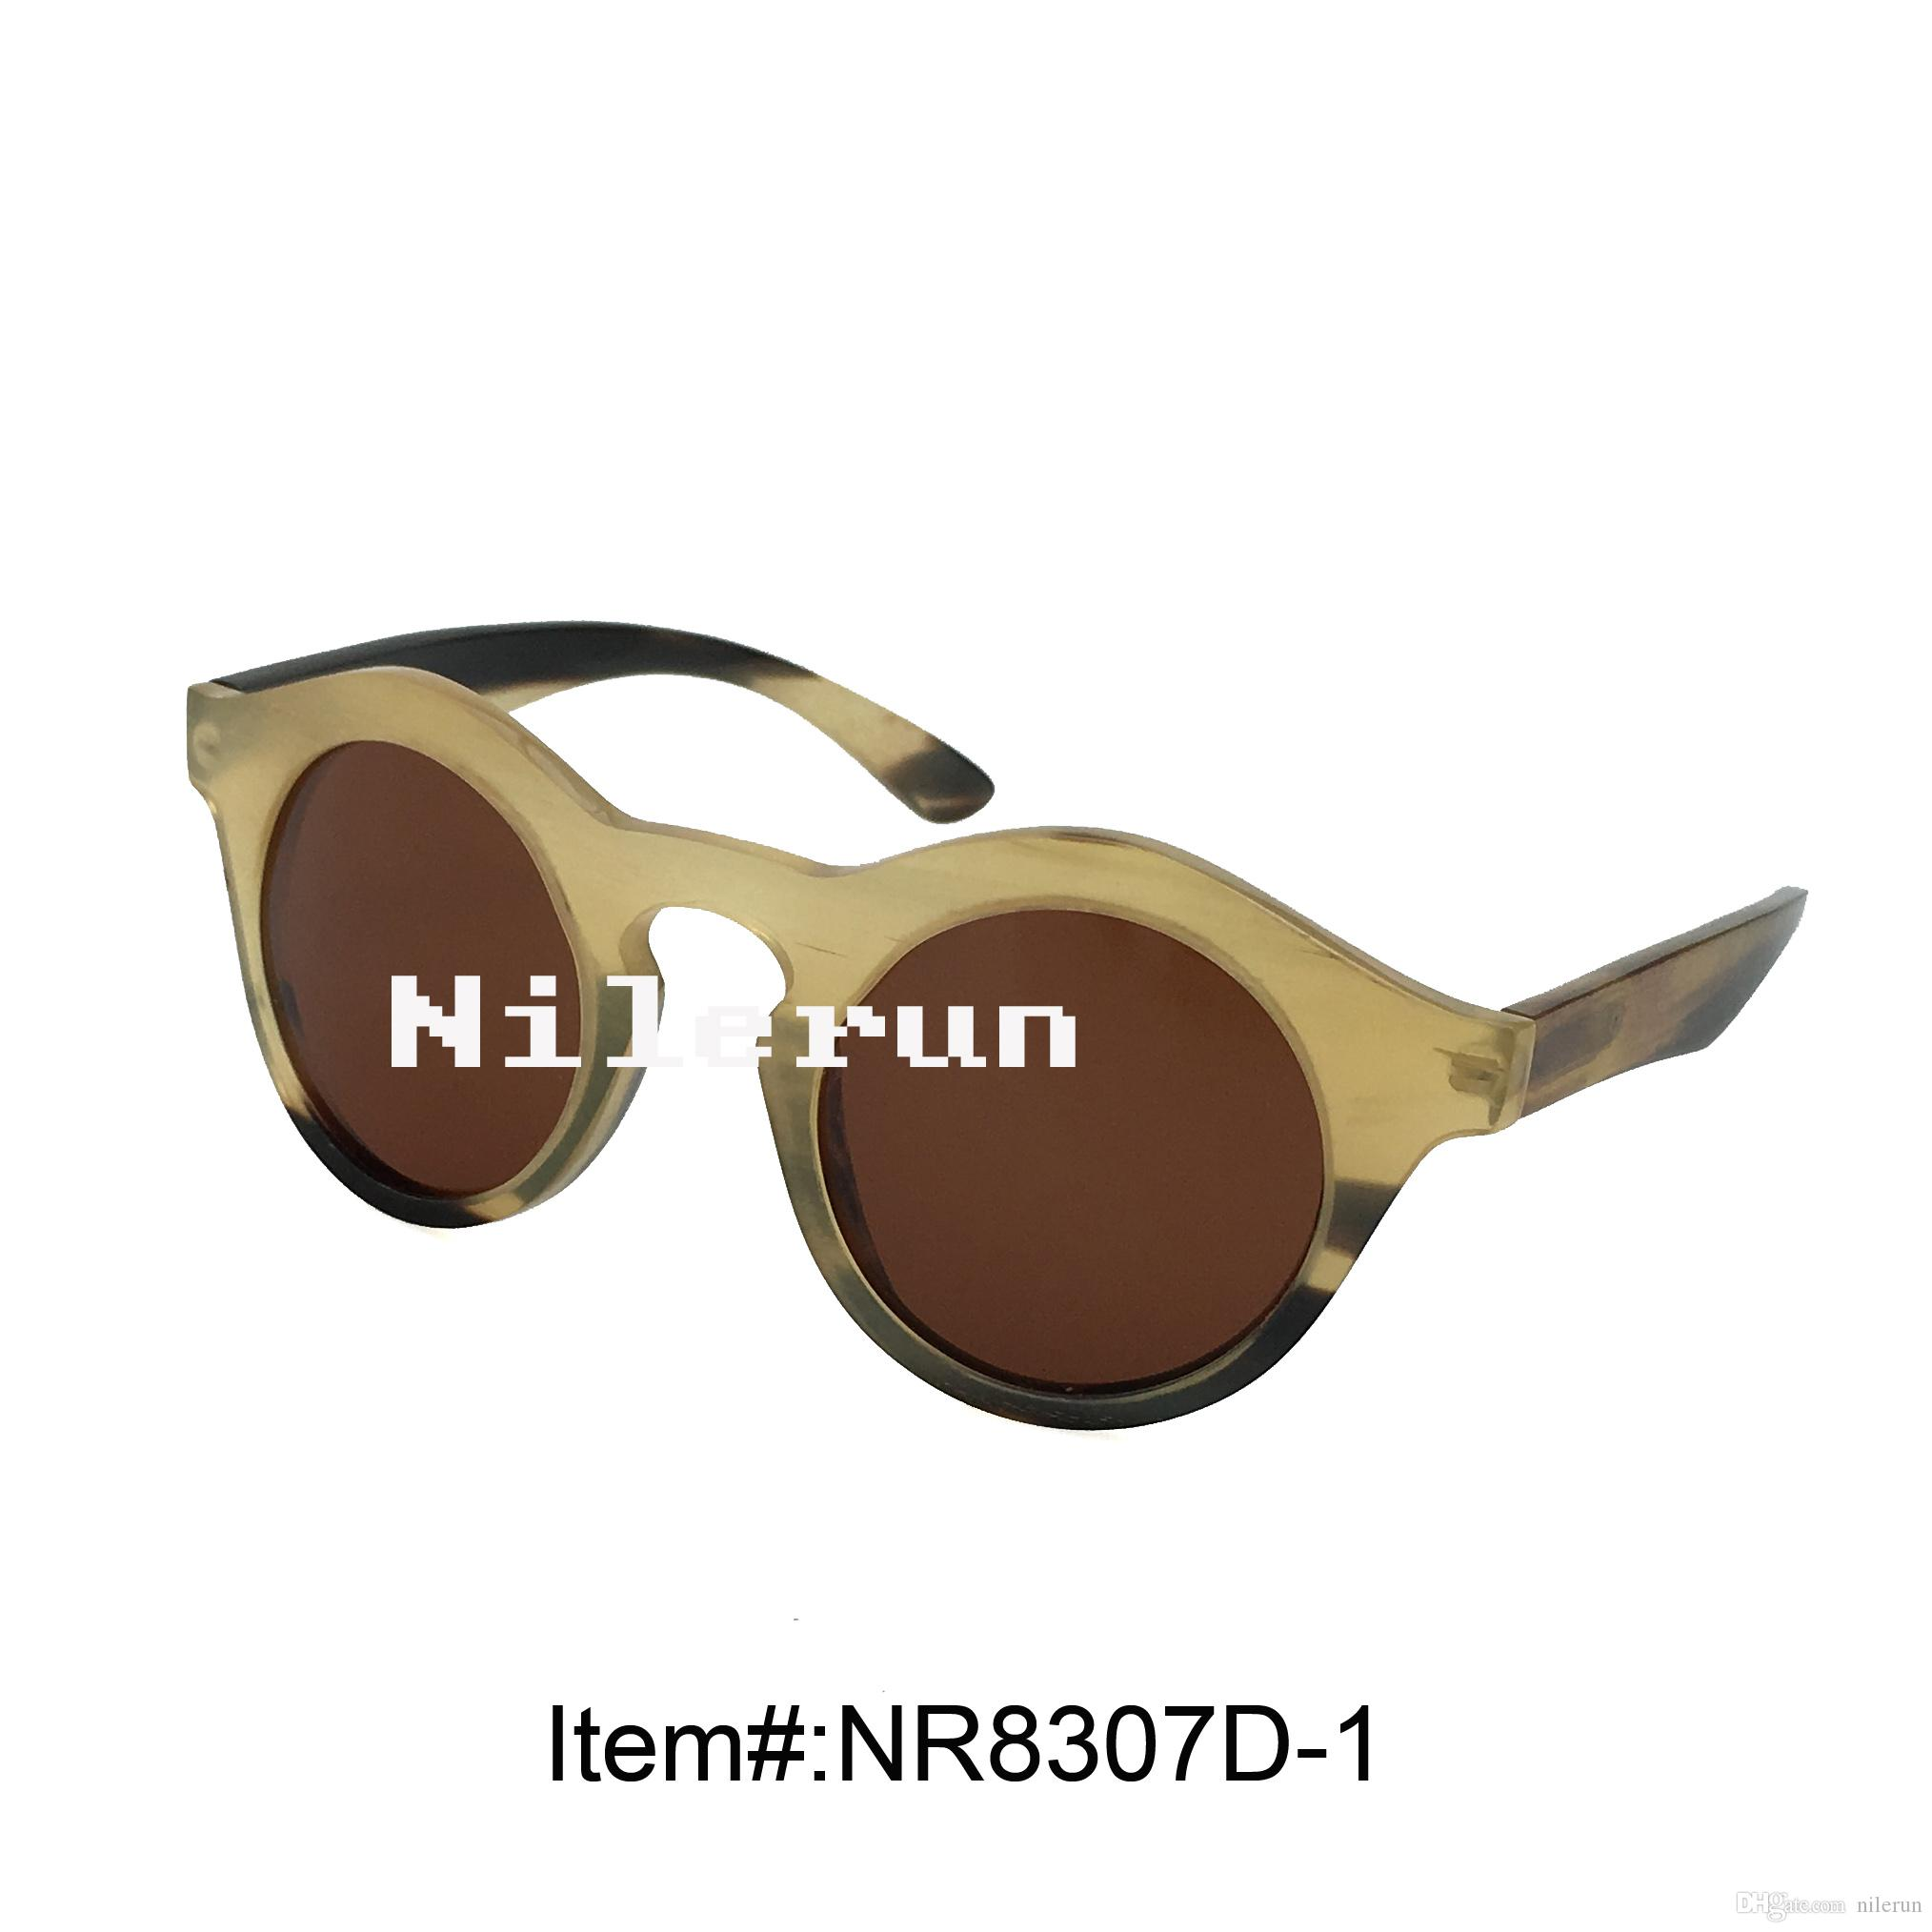 4c85e3f839 Round Brown Lenses Yak Horn Sunglasses Horn Eyewear Round Horn Sunglasses  Yak Horn Sunglasses Online with  65.83 Piece on Nilerun s Store